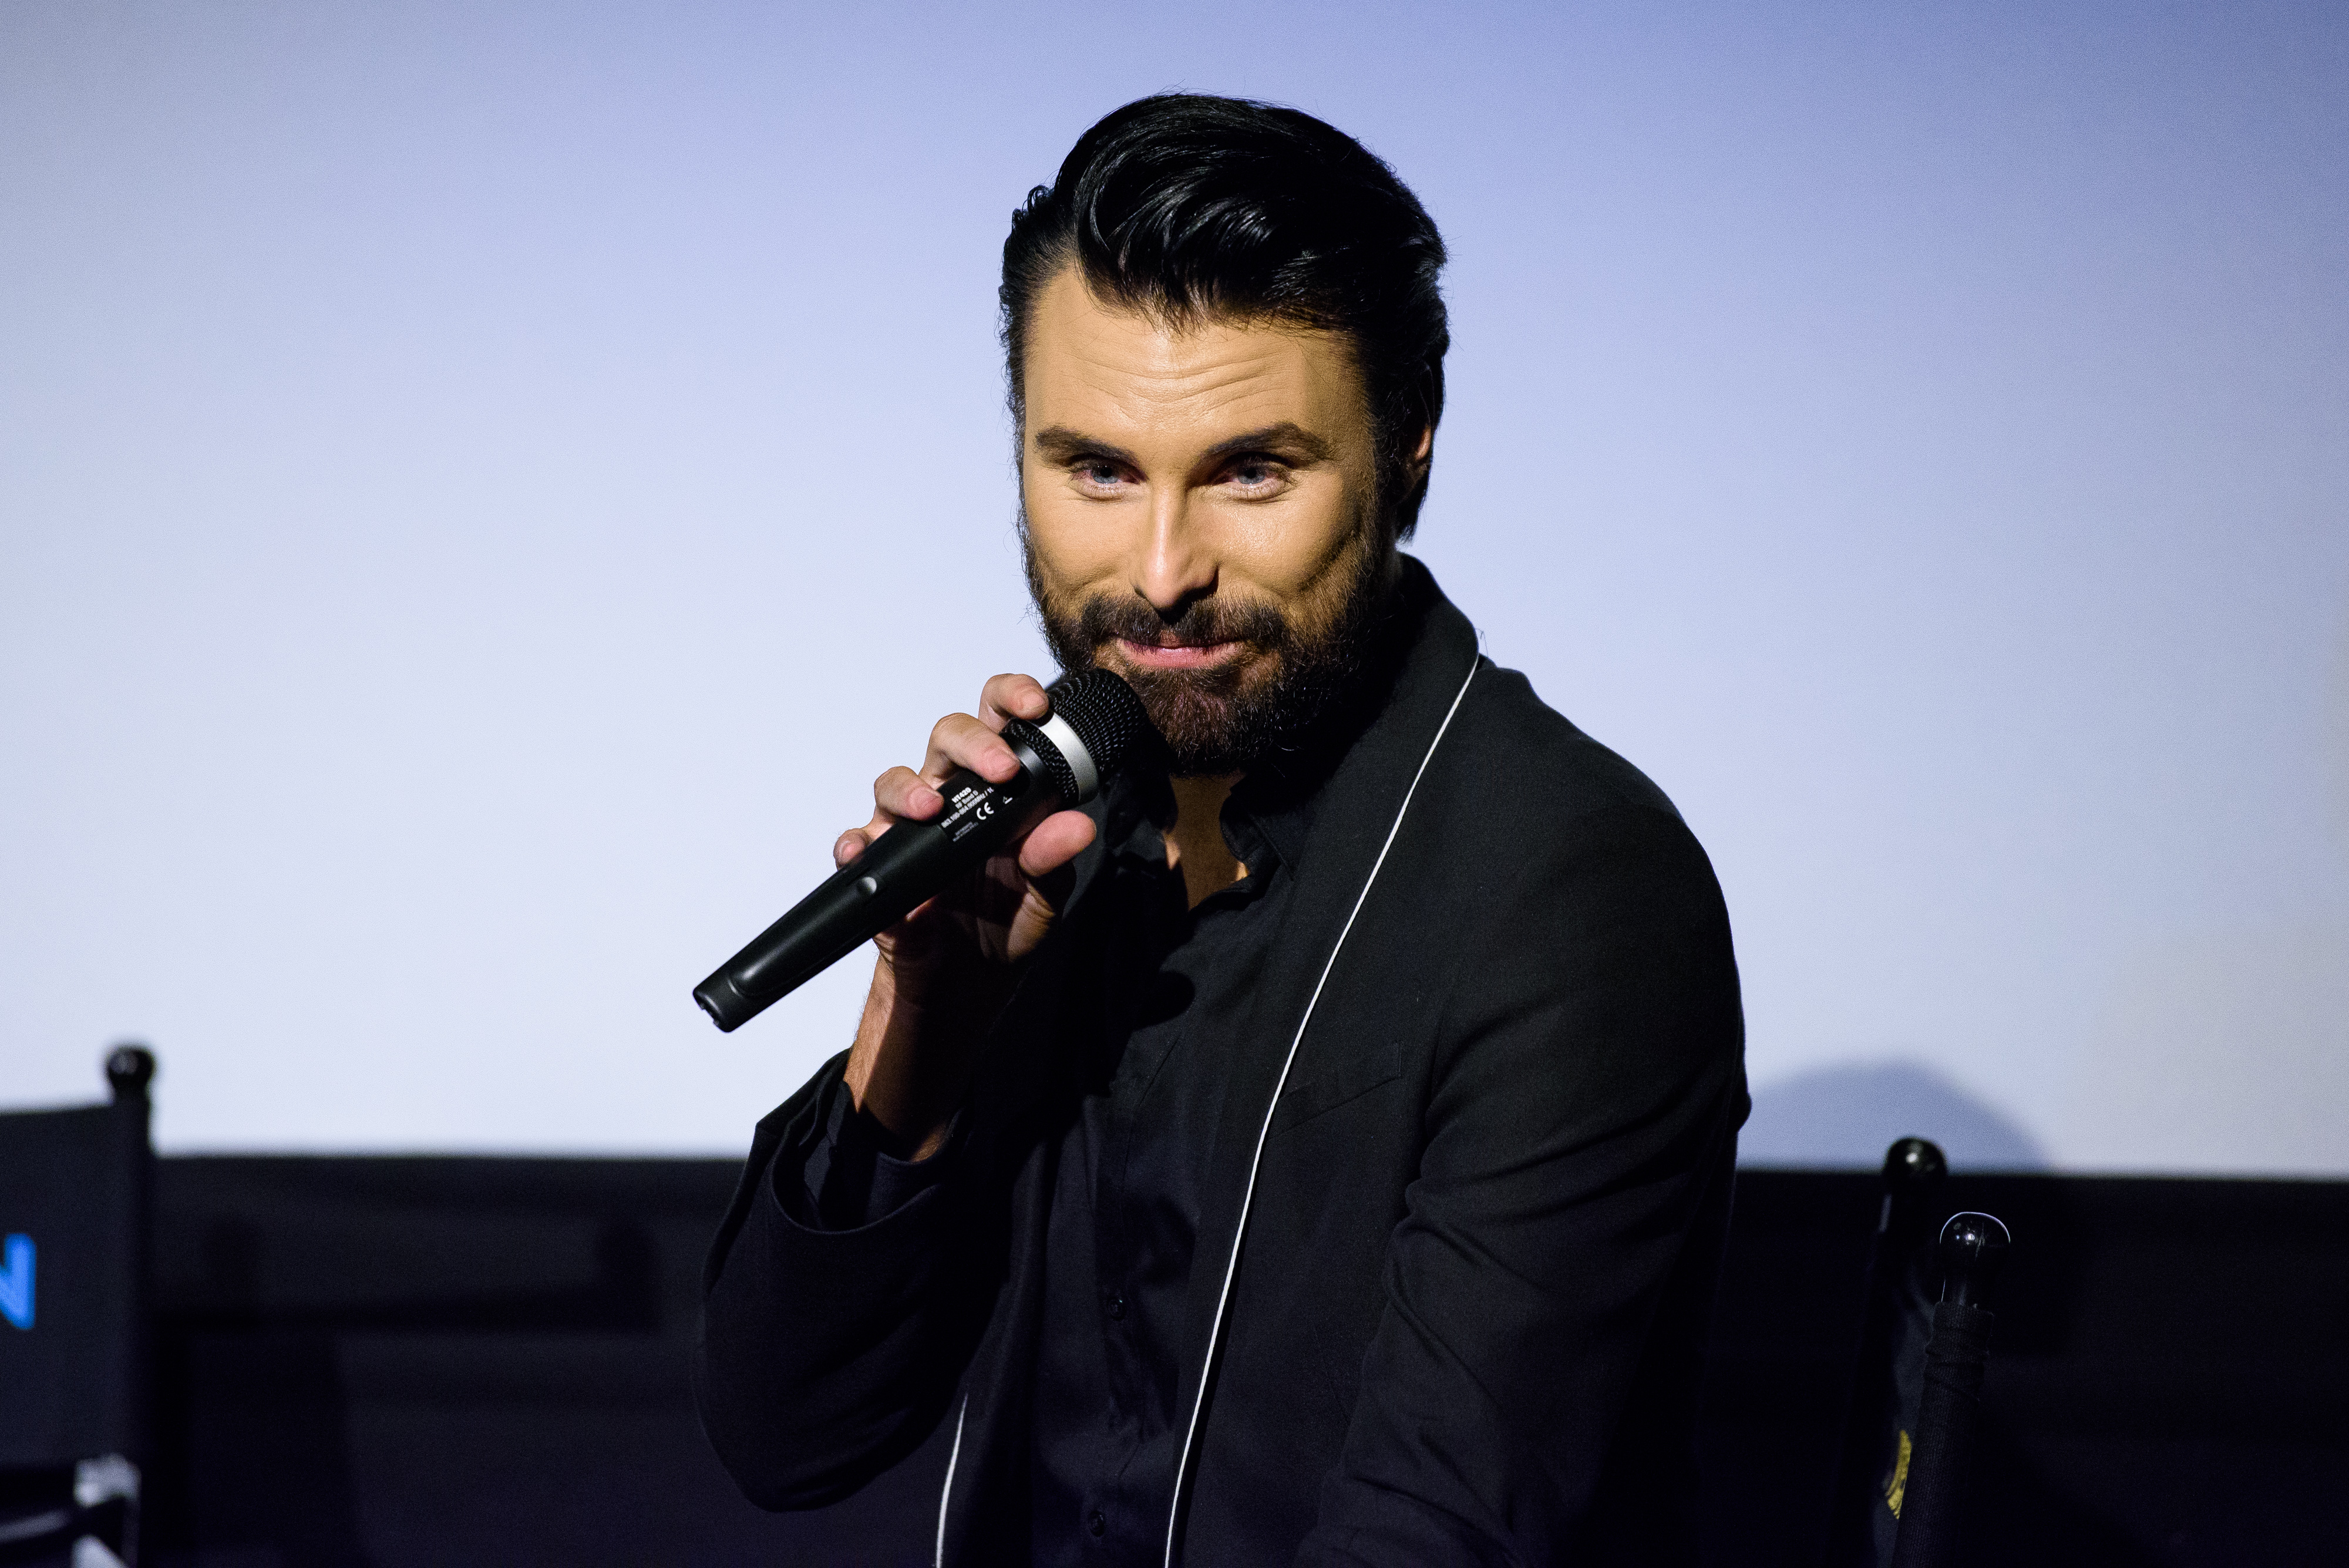 Rylan Clark-Neal says he played up to a character